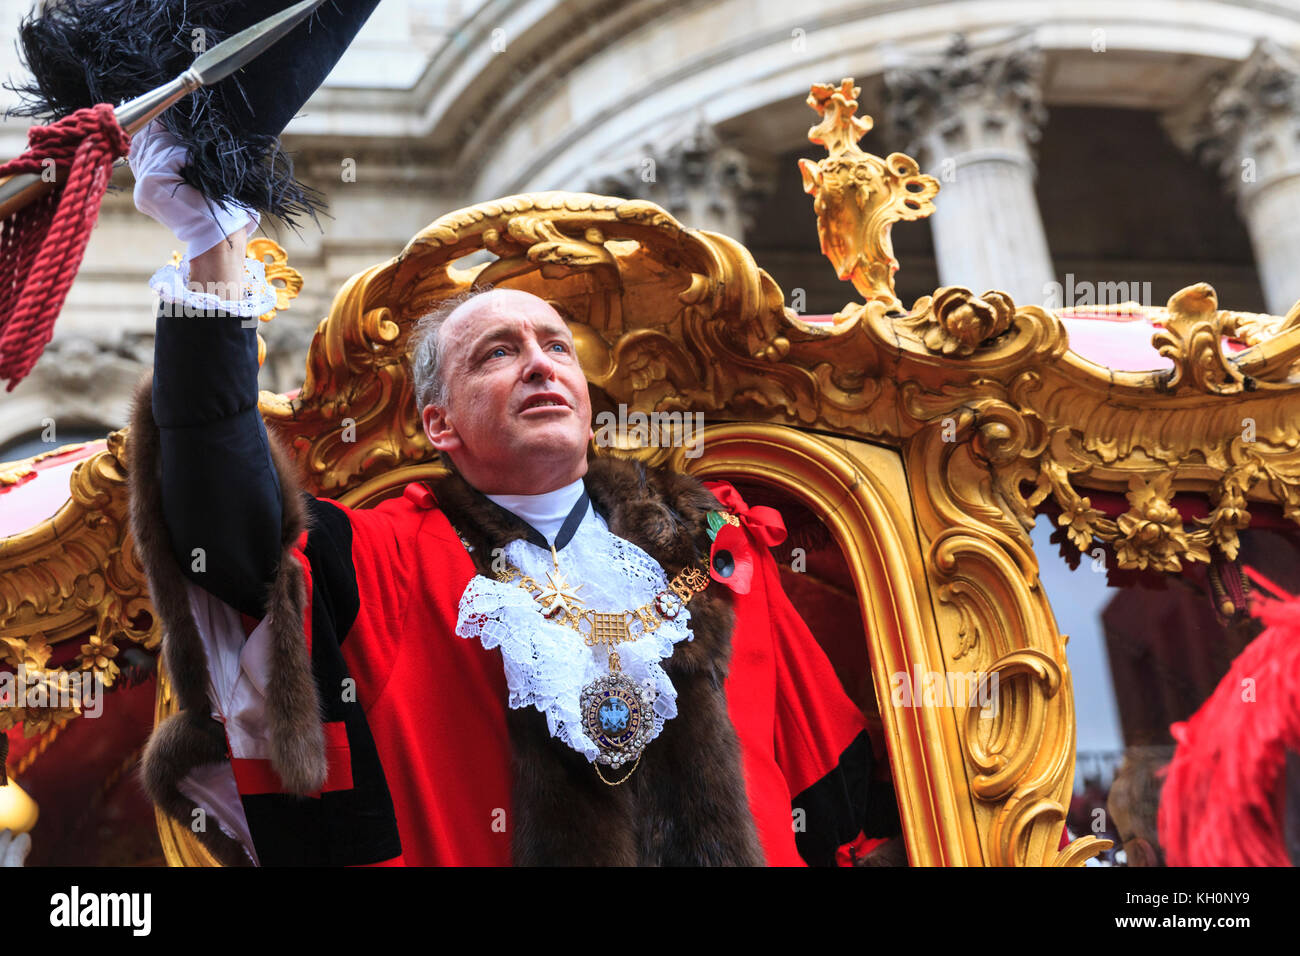 City of London, UK. 11th Nov, 2017. The new Lord Mayor, Charles Bowman, waves from the golden State Carriage. The - Stock Image